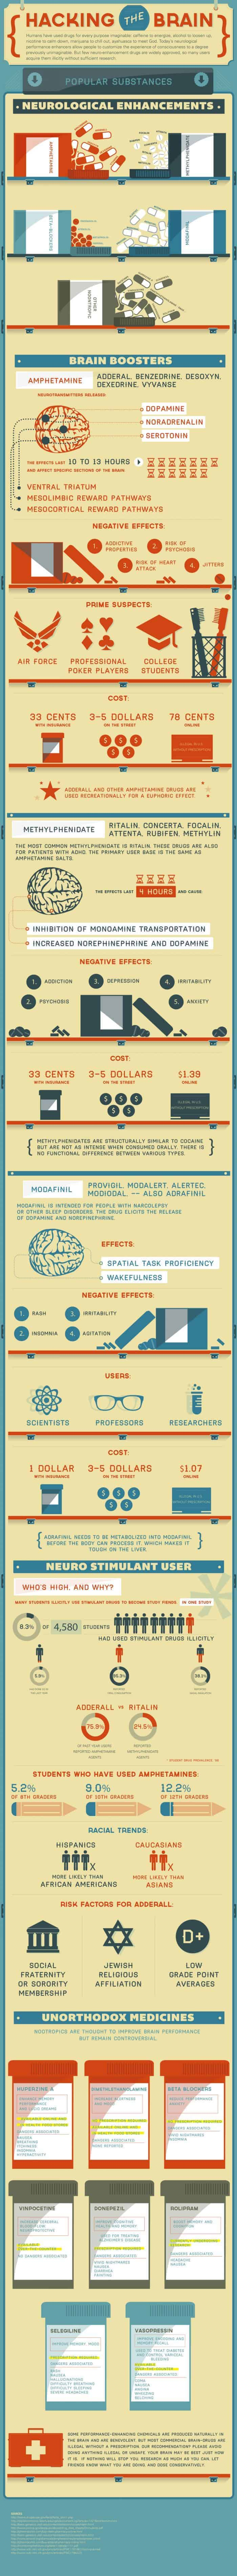 Hacking the Brain with Prescription Drugs